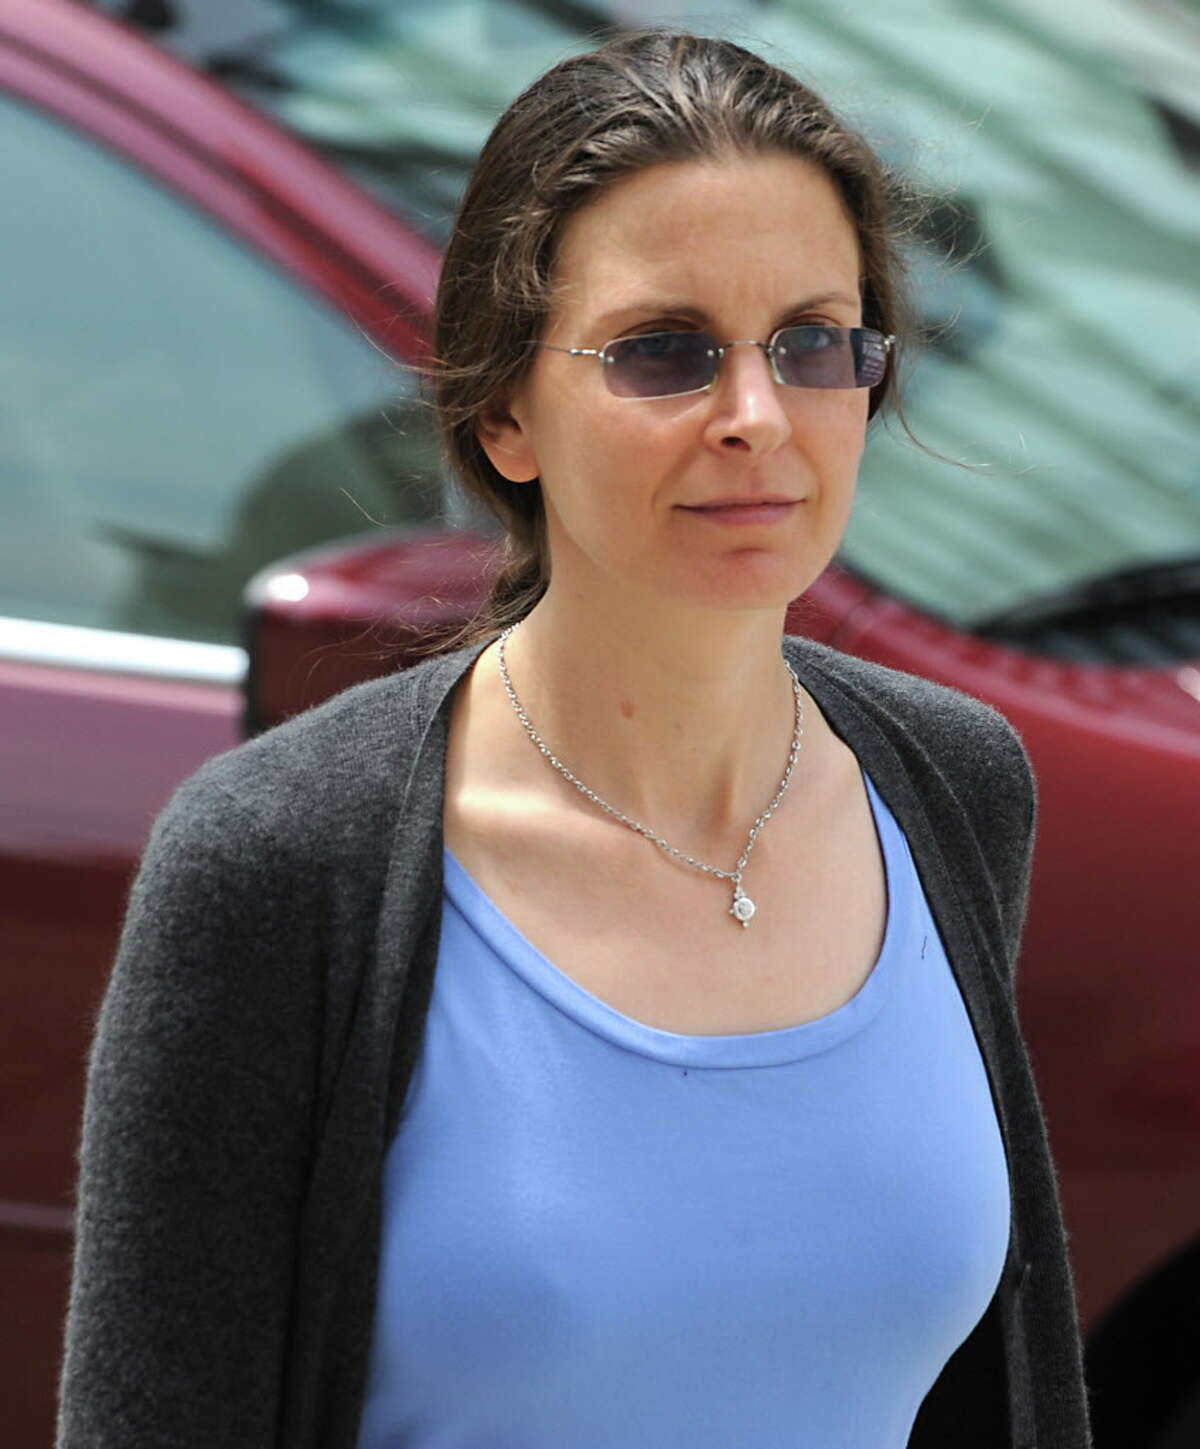 Clare Bronfman, pictured here in 2011, has been accused by a former NXIVM associate of implanting a virus on her late father's computer. The virus, called a key-stroke logger, was allegedly used by NXIVM officials to secretly monitor the emails of Edgar Bronfman, Sr. (Lori Van Buren / Times Union)